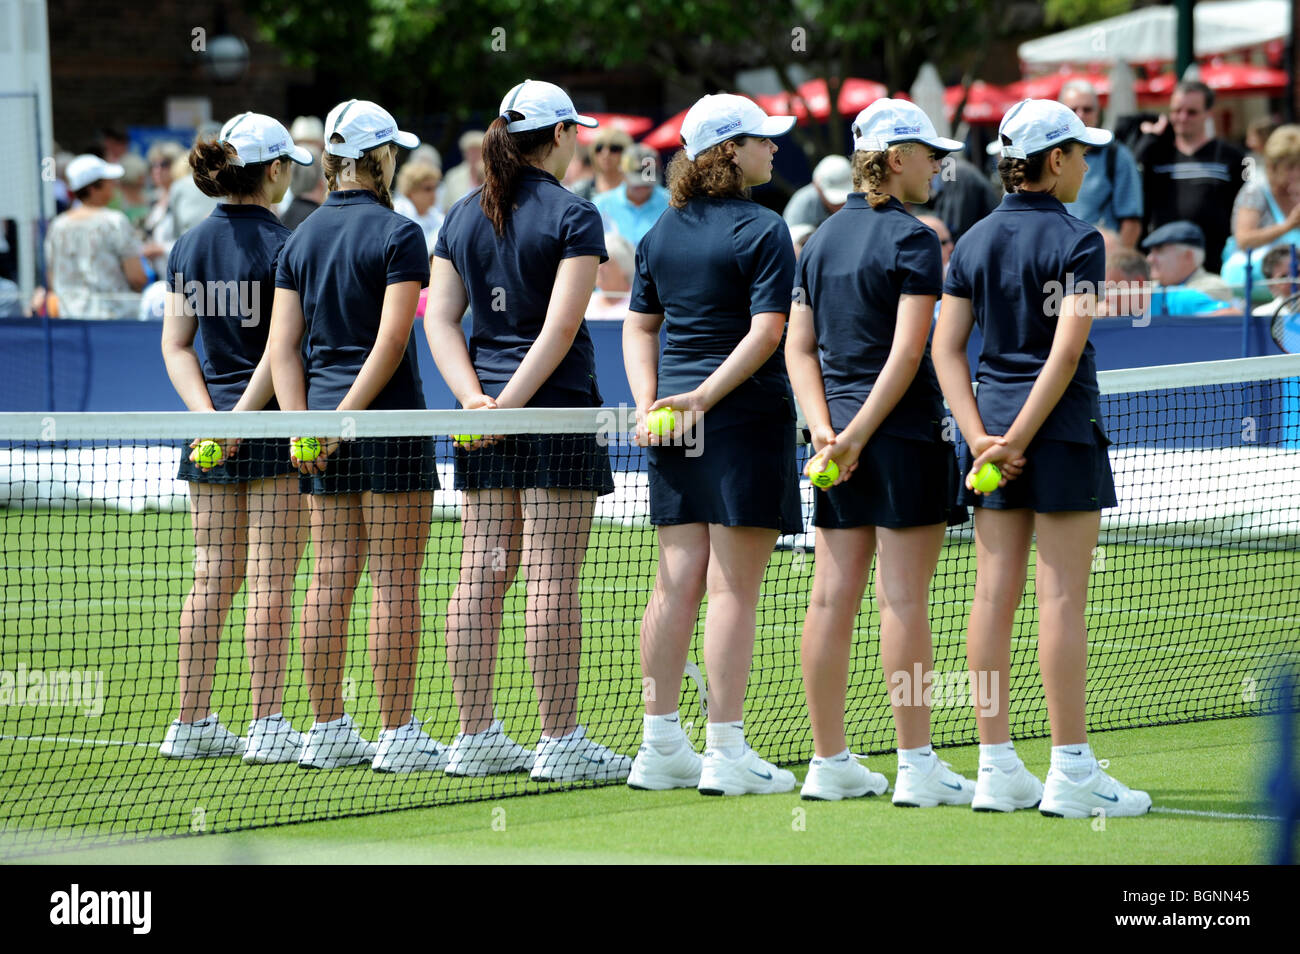 Ball girls line up on court before a match at the Aegon International 2009 Tennis Championships at Devonshire Park - Stock Image